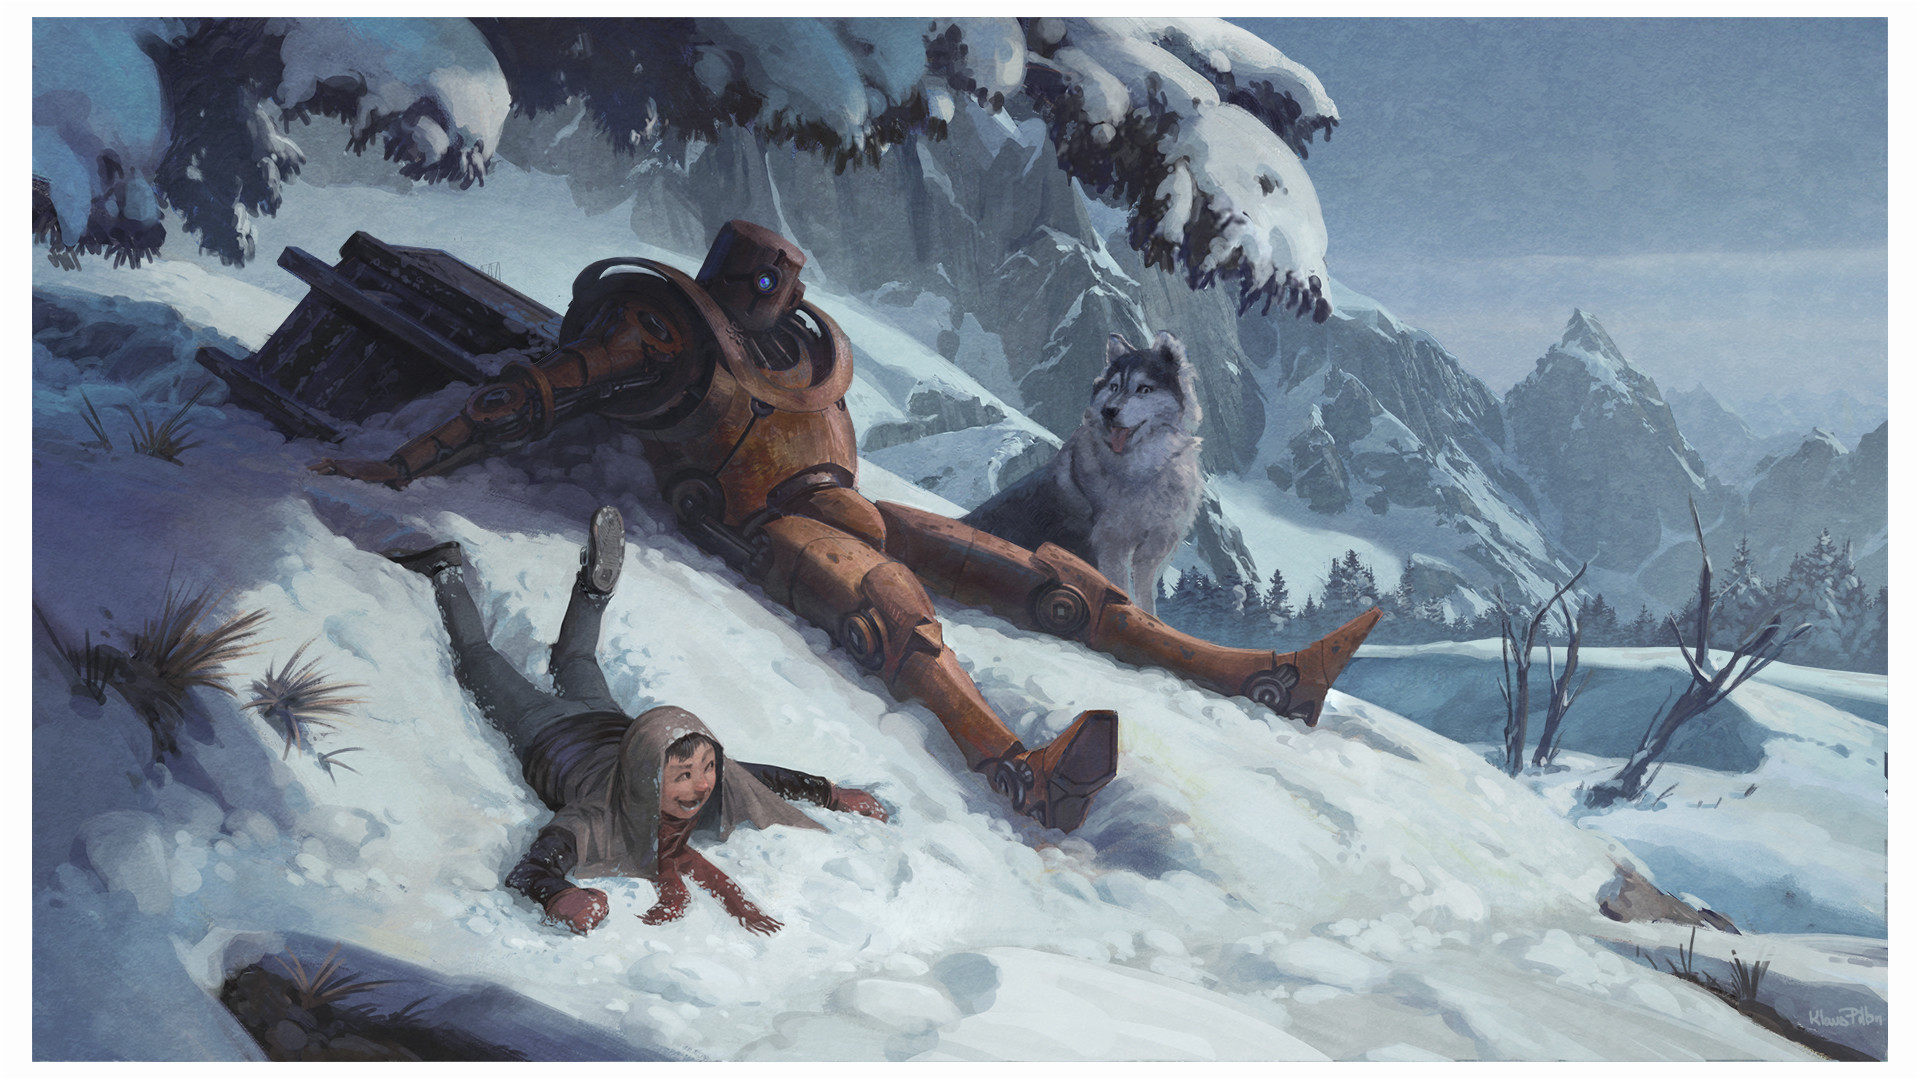 Klaus pillon christmascard notext